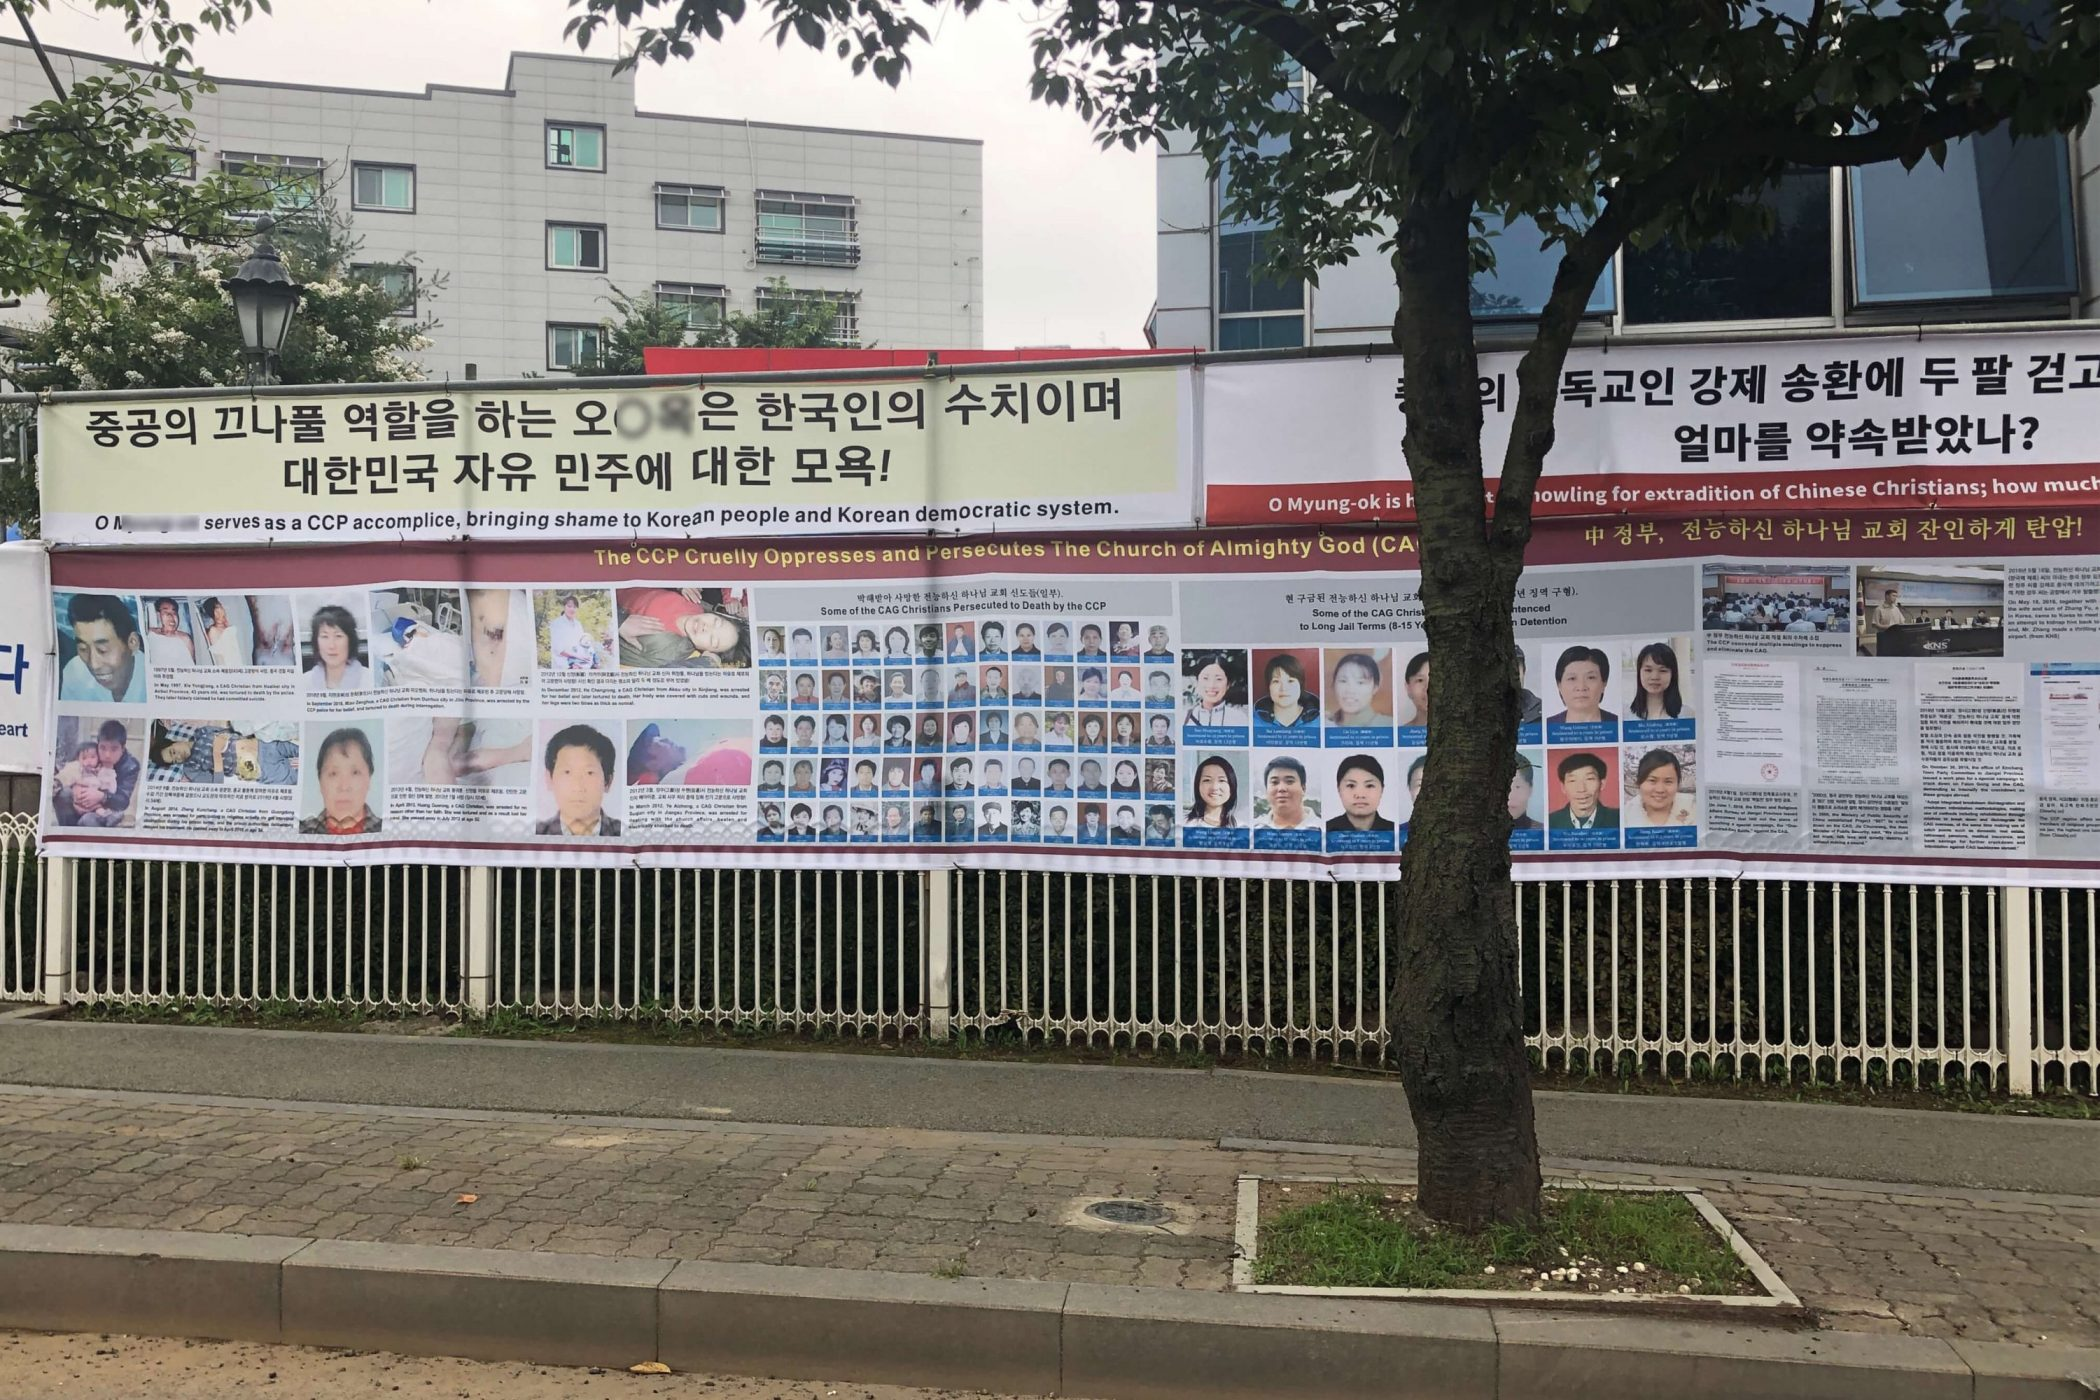 O Myung-ok serves as a CCP accomplice, bringing shame to Korean people and Korean democratic system